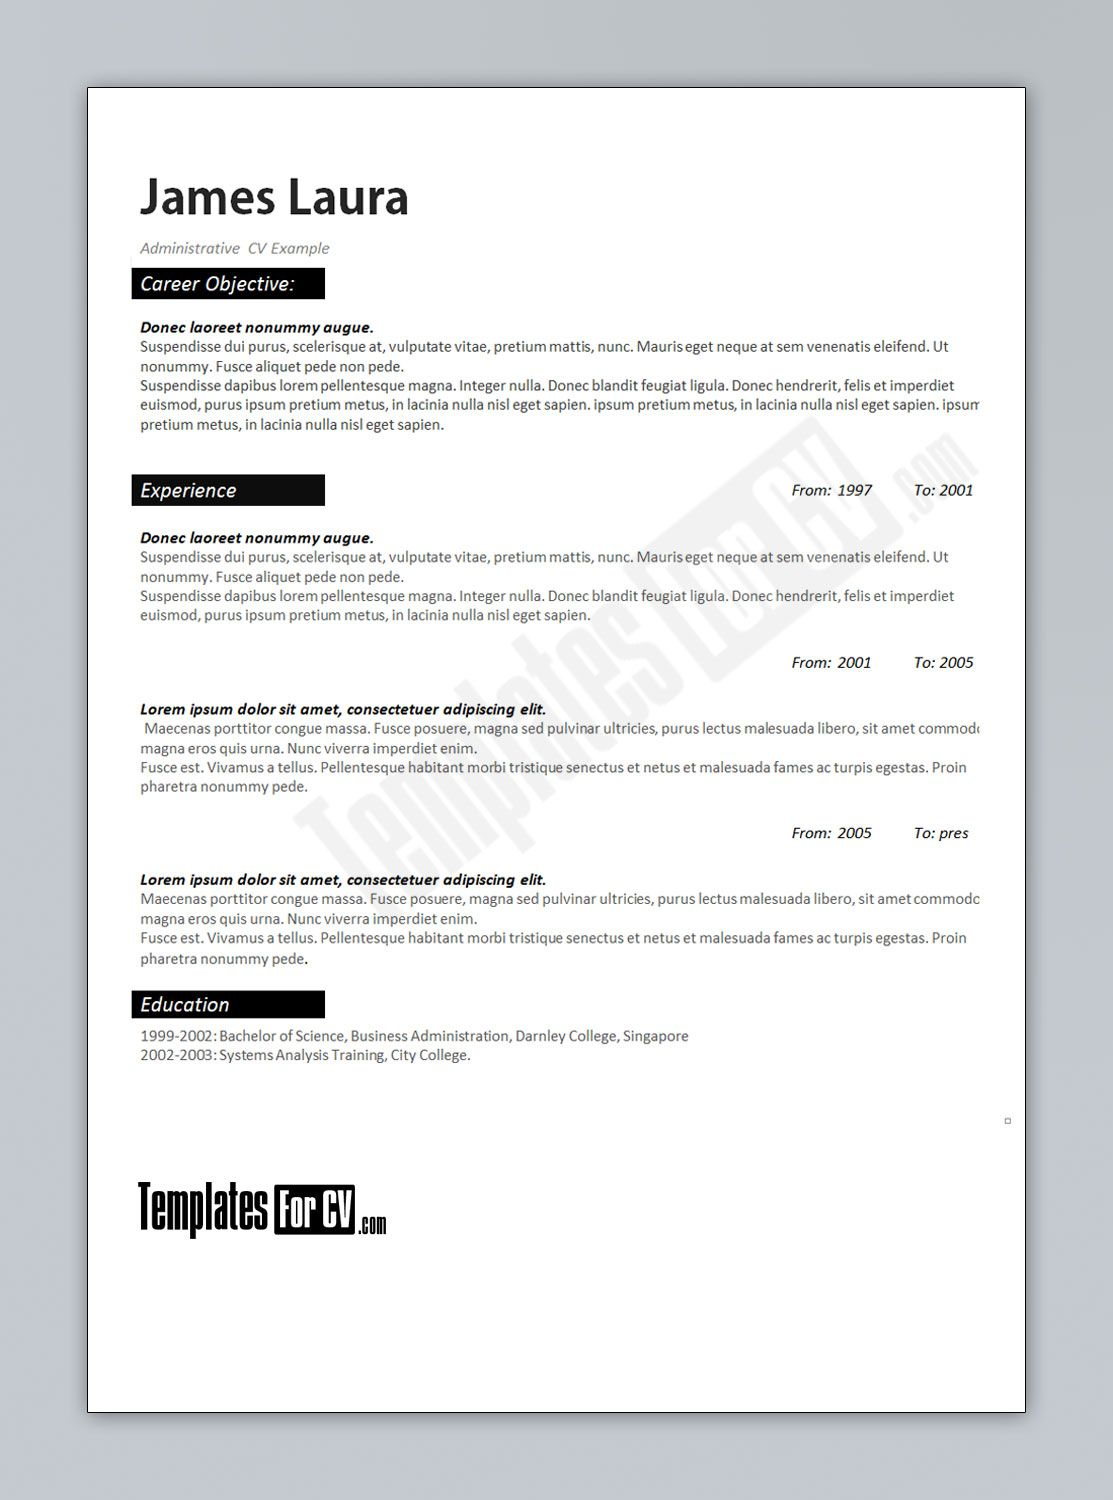 how to create a cv template in word - administrator cv template cv template administrator